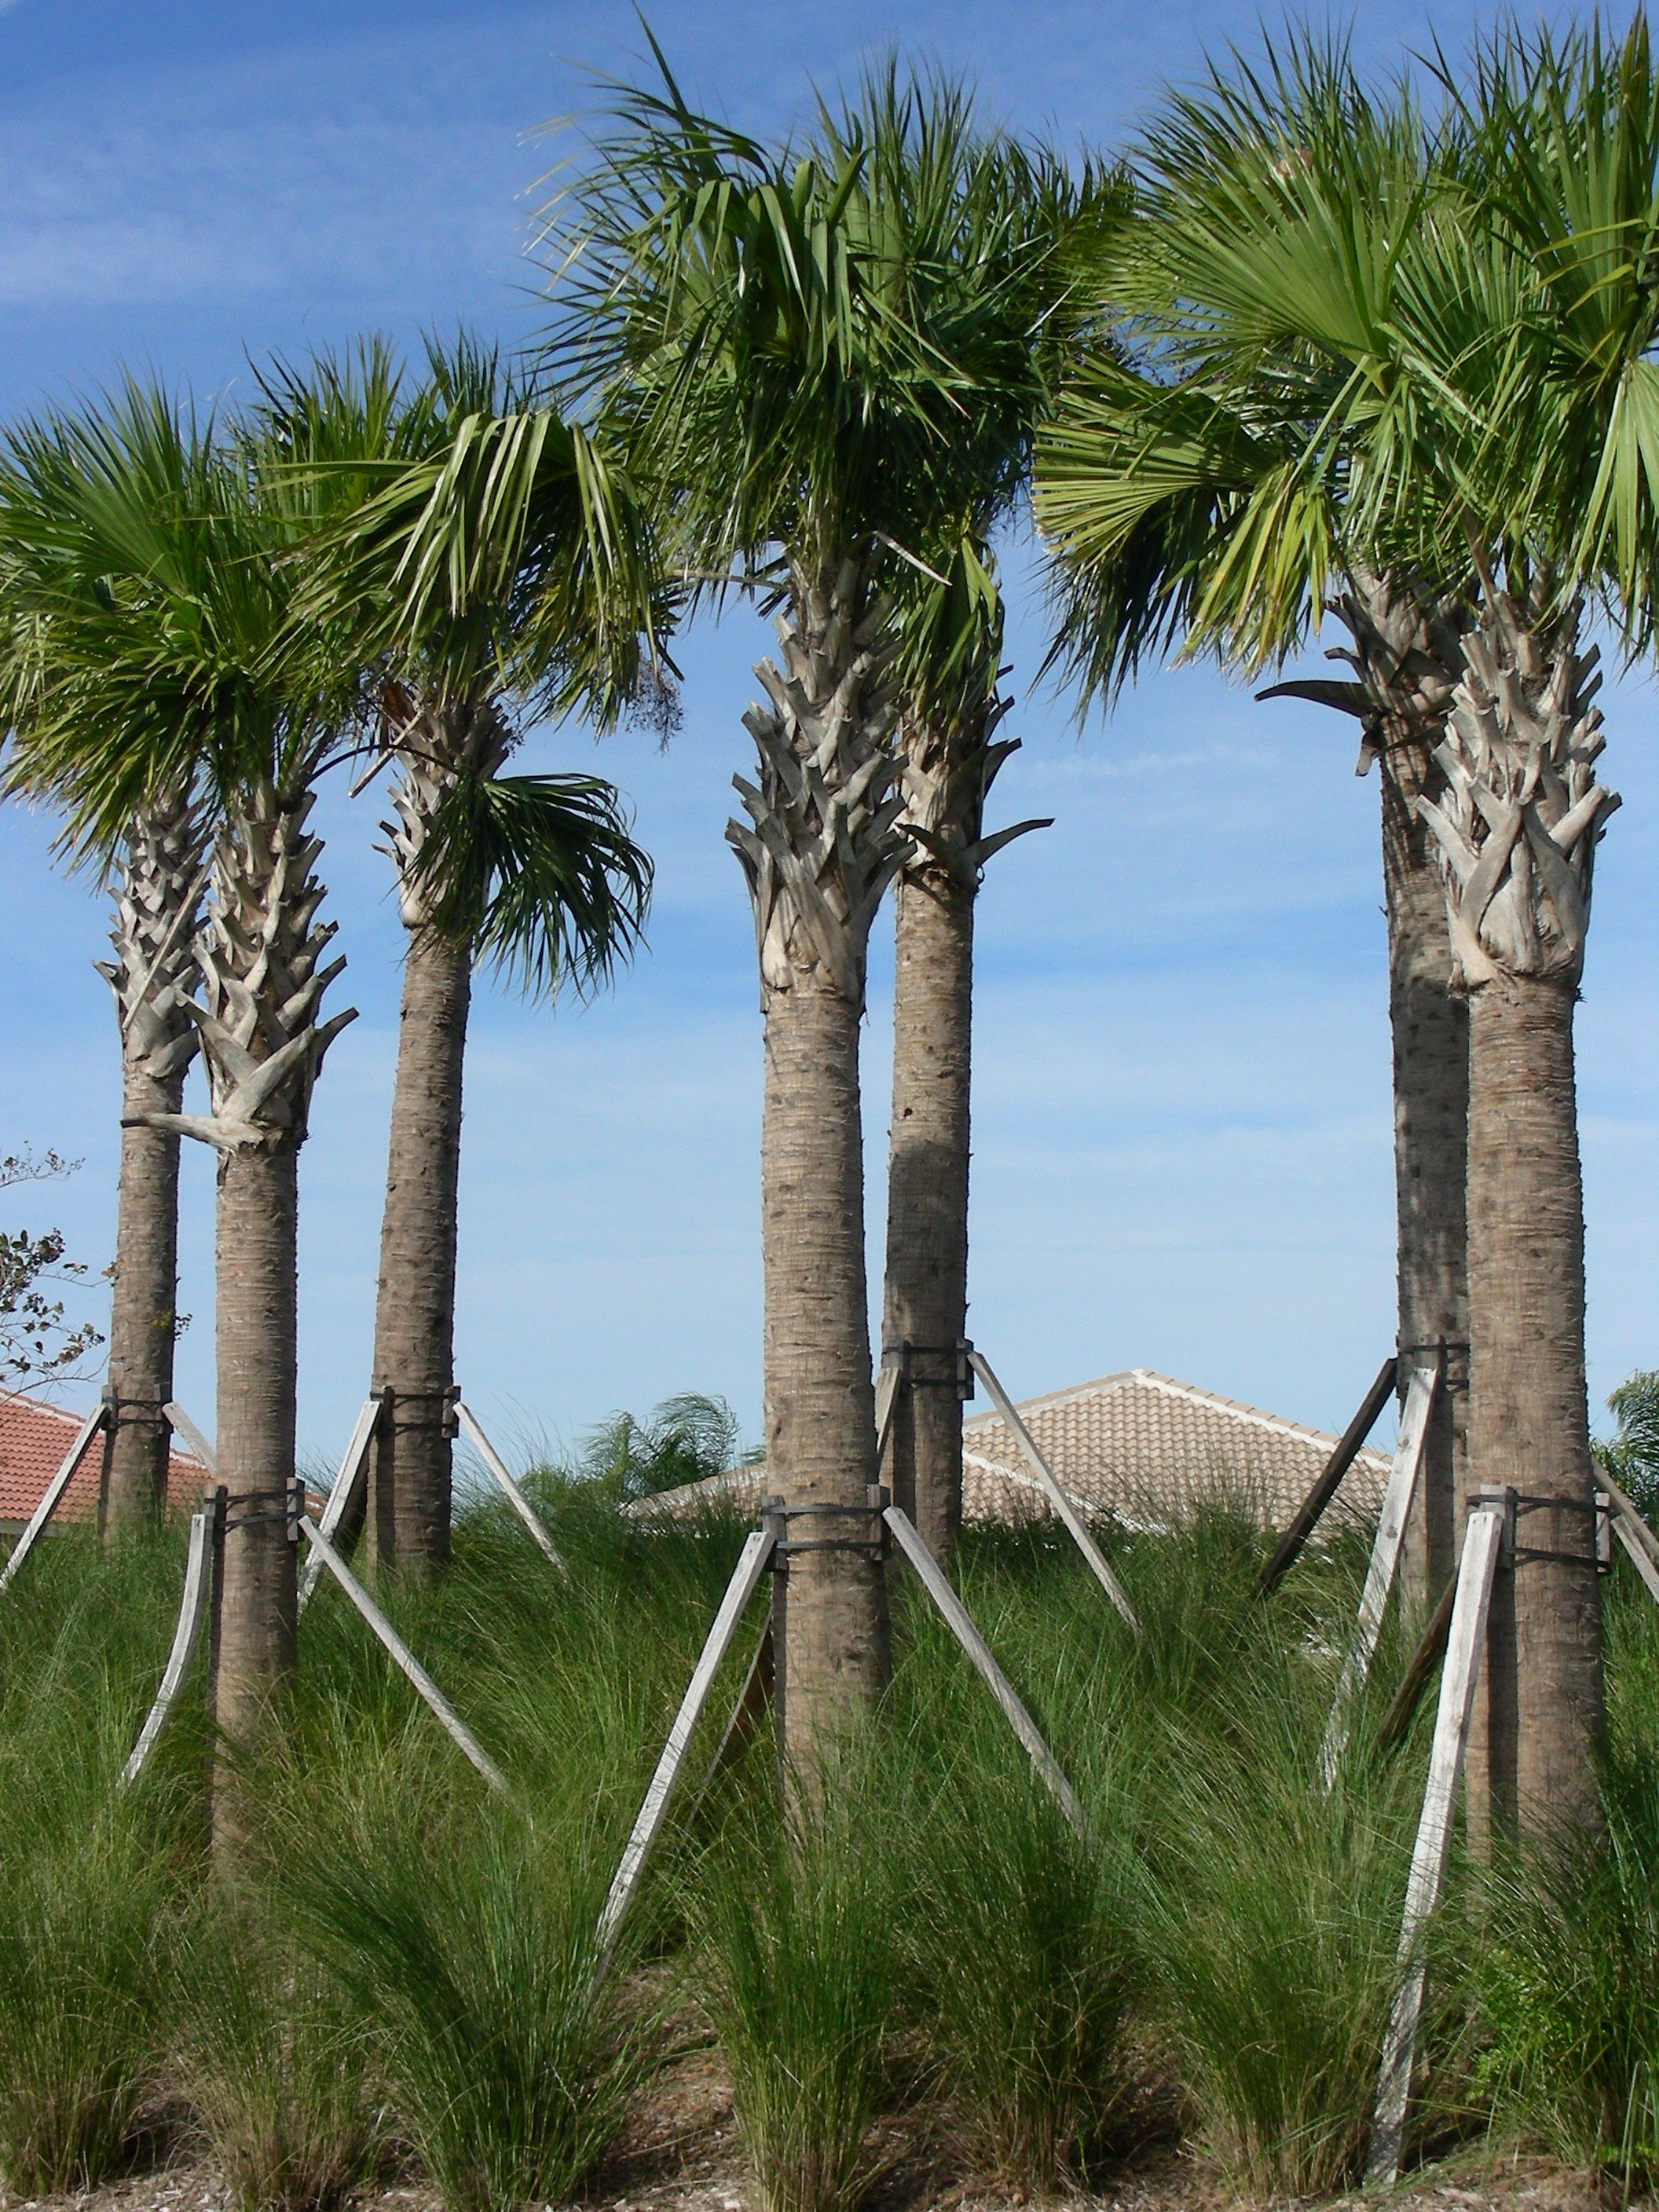 sabal palms look great against the florida sky they are our state